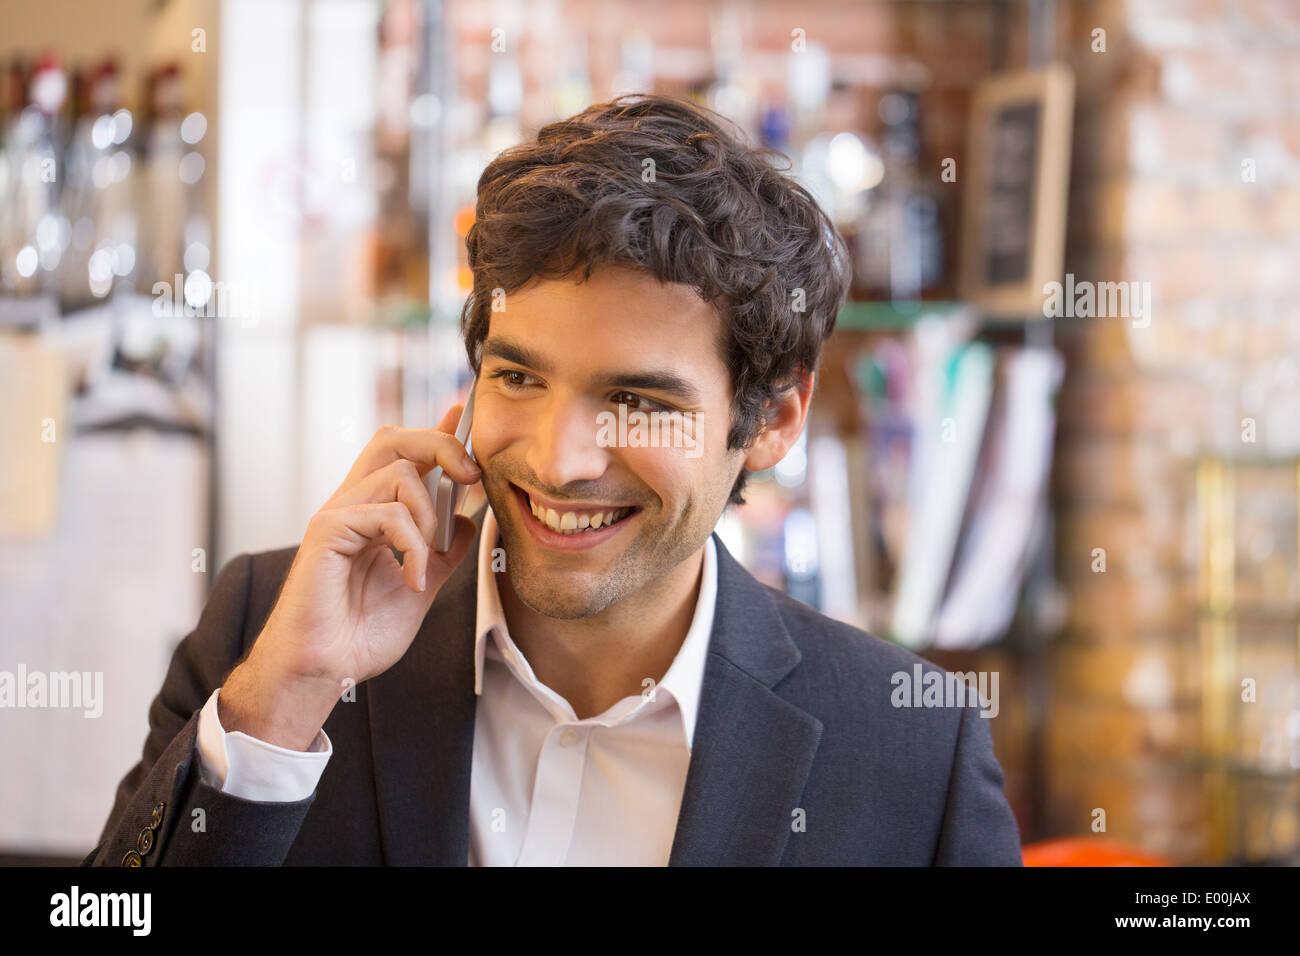 Male cheerful mobile phone smiling restaurant - Stock Image